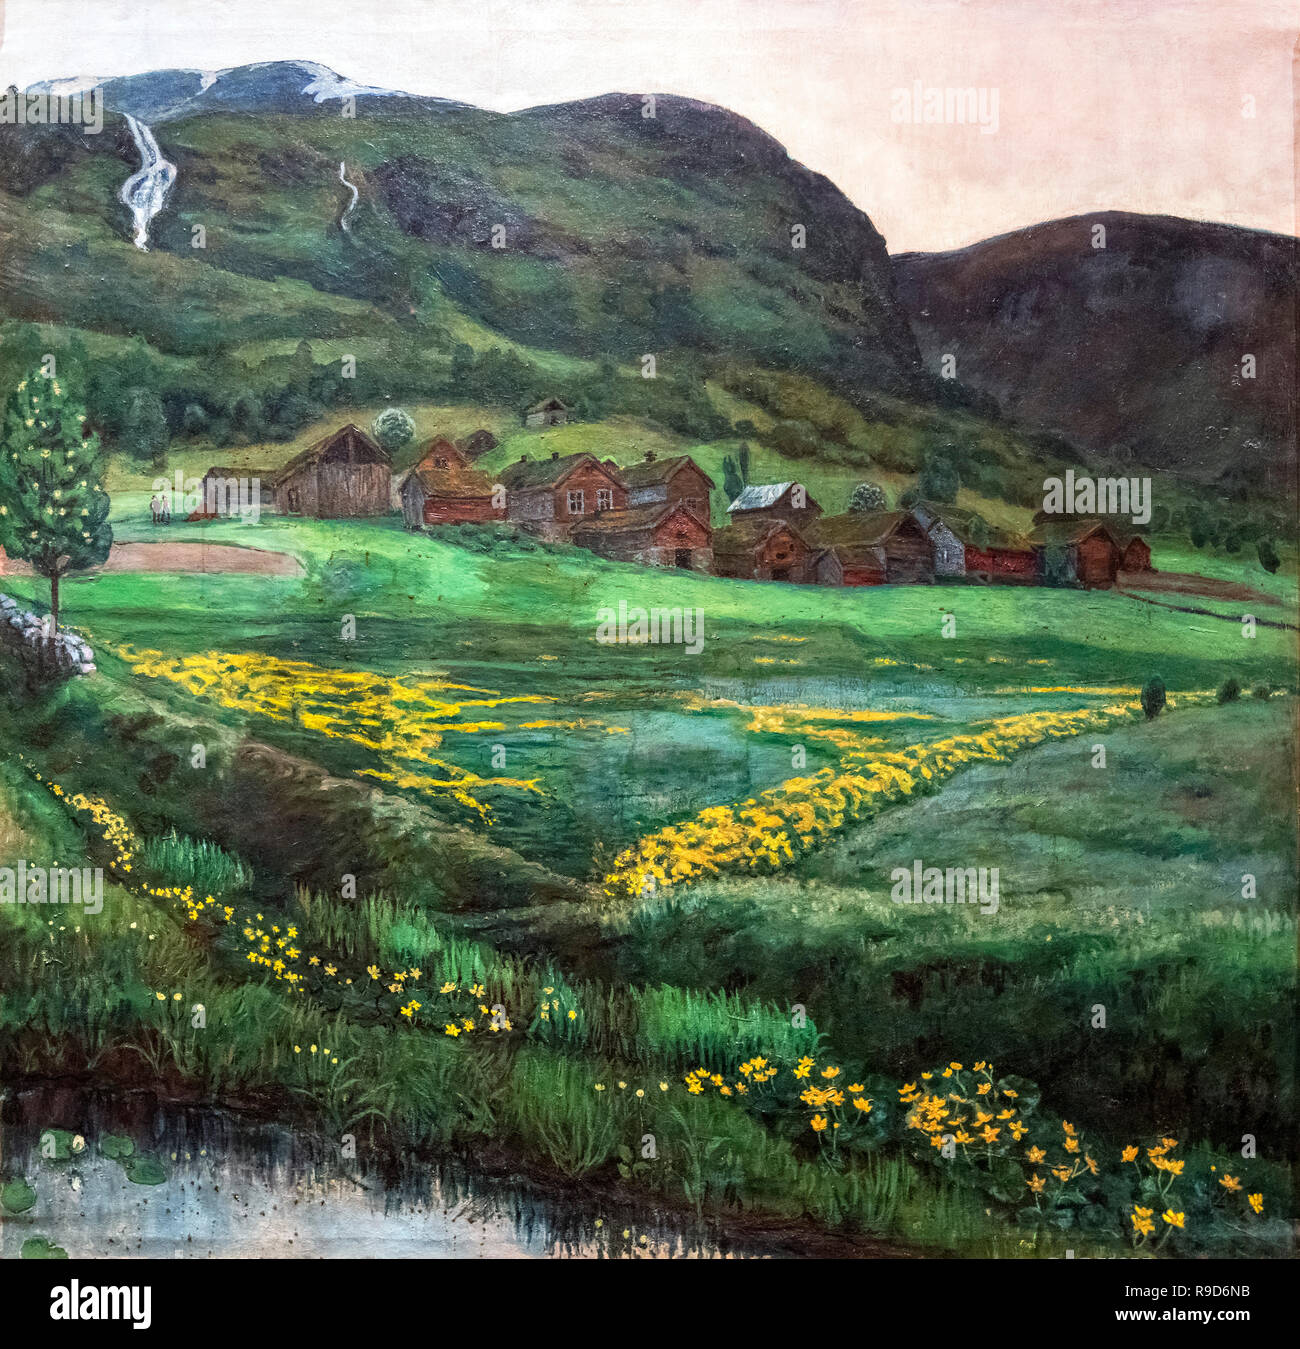 A Clear Night in June by Nikolai Astrup (1880-1928), oil on canvas, c.1911 - Stock Image